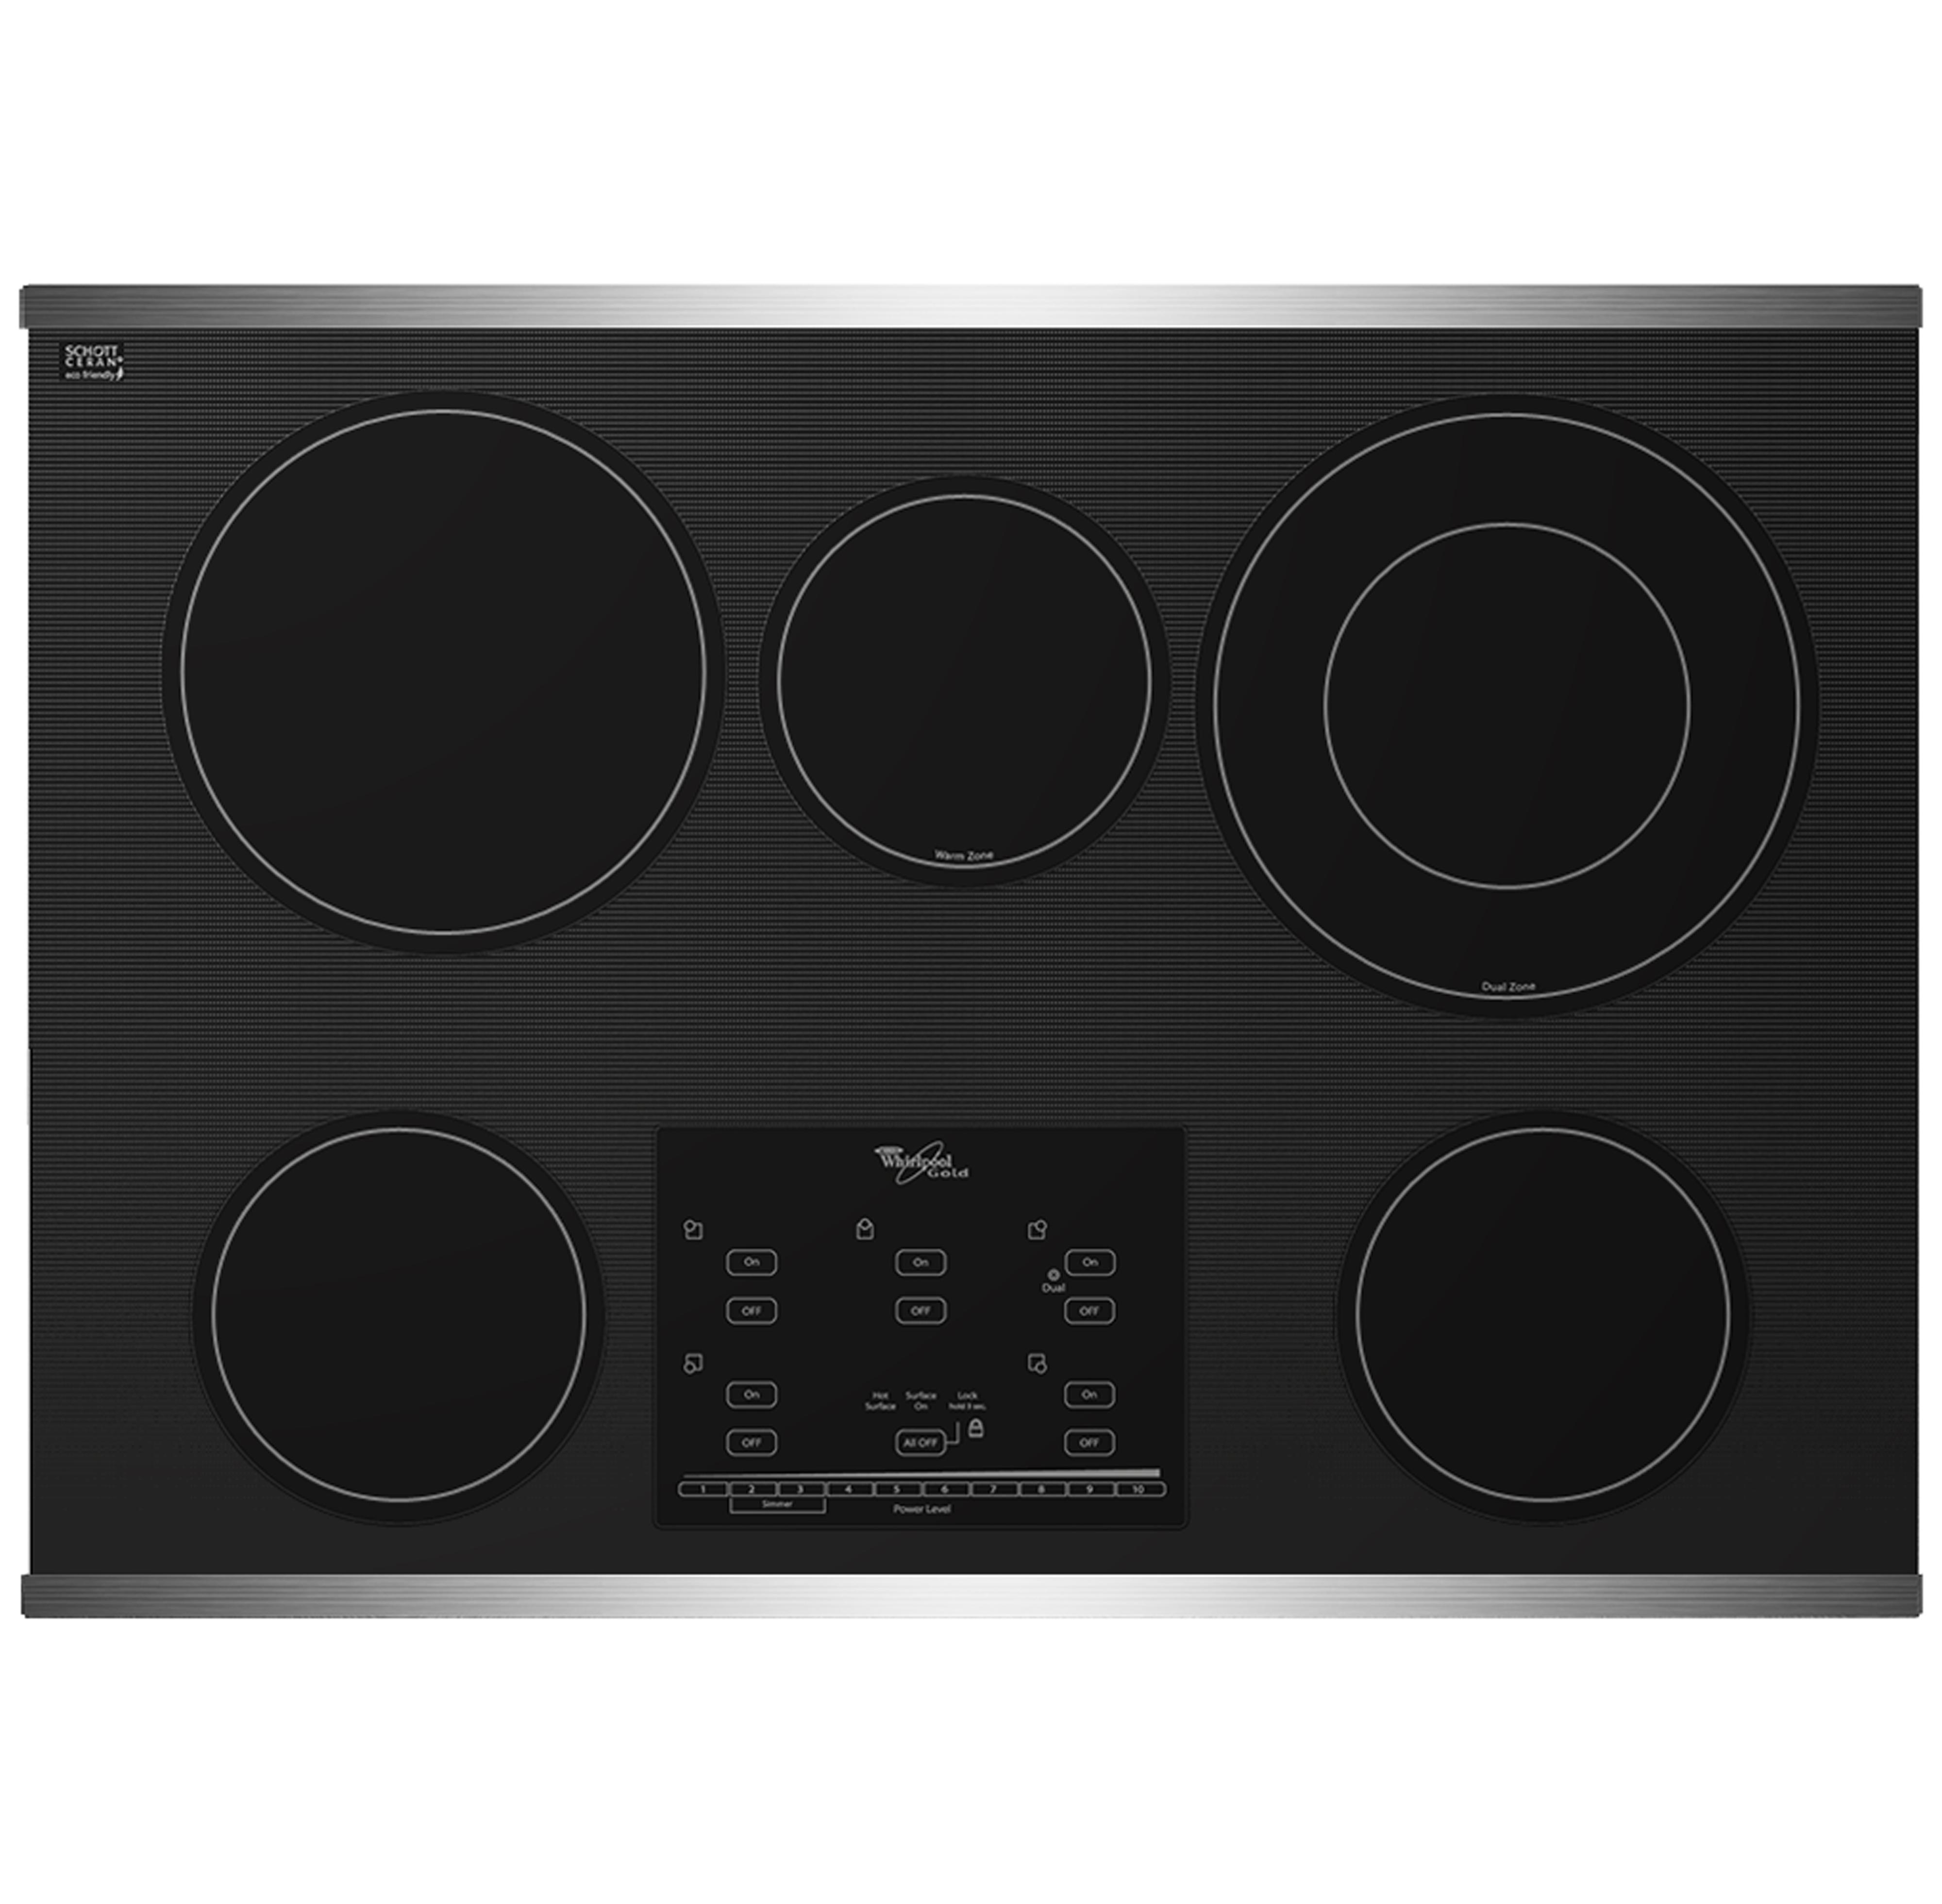 "Whirlpool Electric Cooktop 30"" Built-In Electric Cooktop - Item Number: G9CE3065XS"